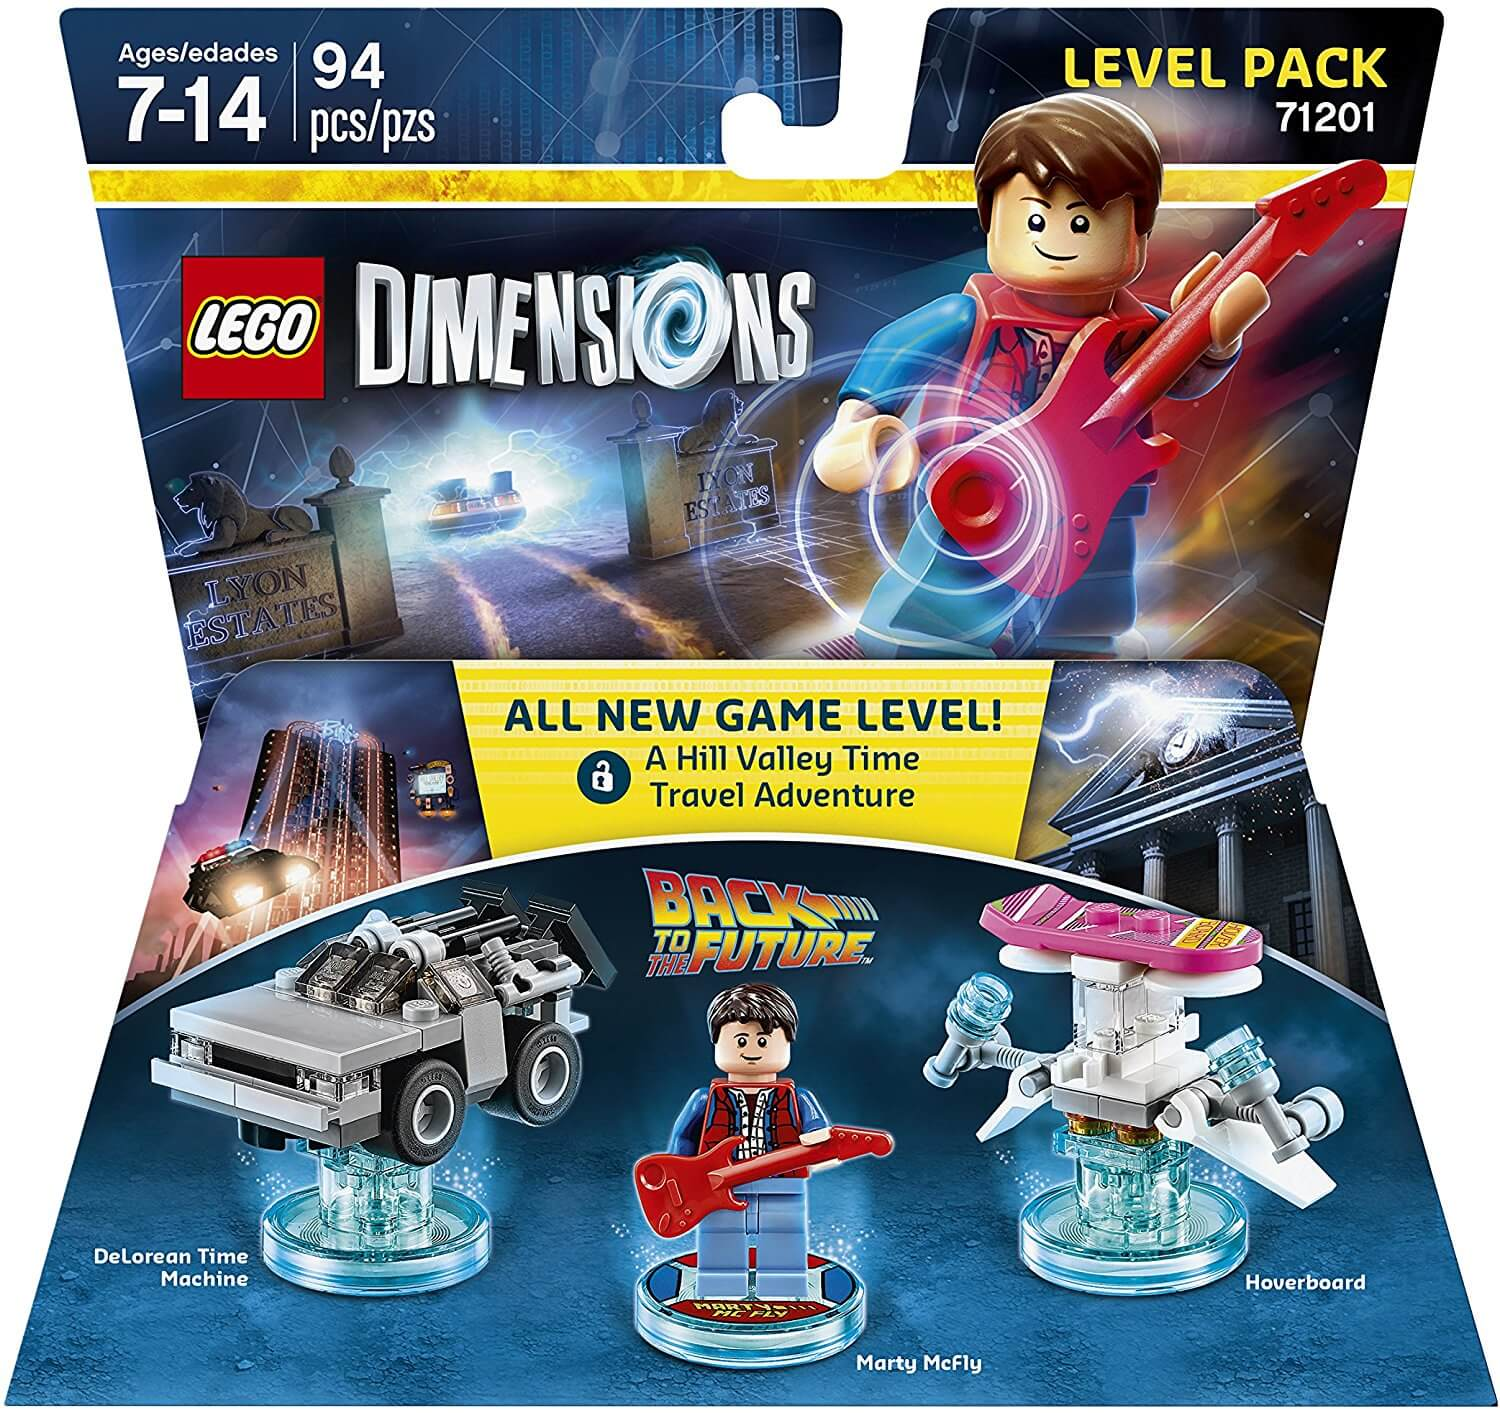 91201hC00QL. AC SL1500  - Back to the Future Level Pack - LEGO Dimensions